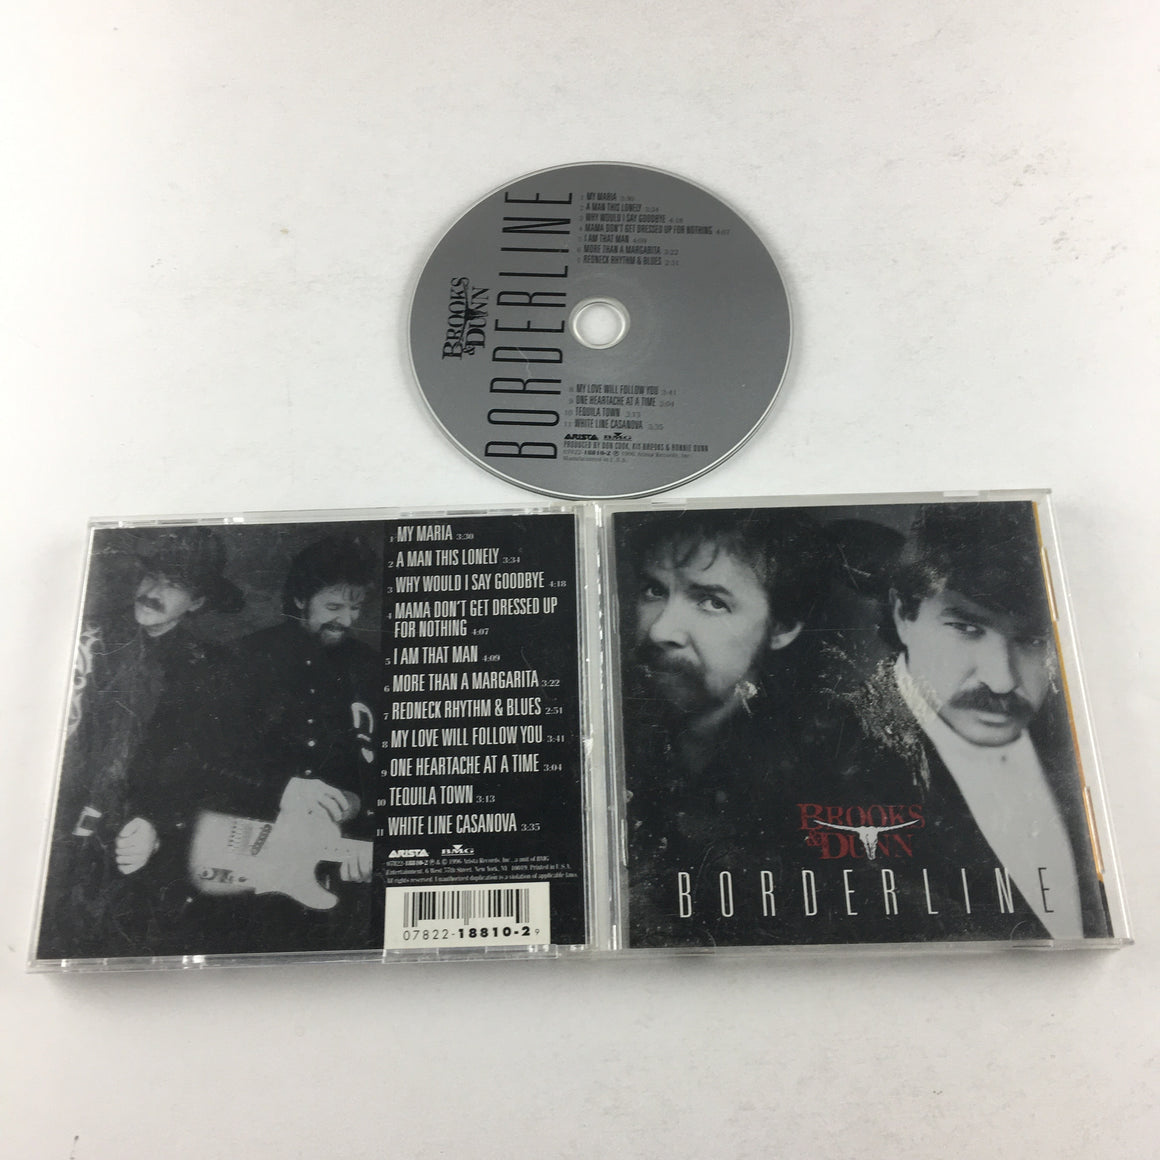 Brooks & Dunn Borderline Used CD VG 07822-18810-2